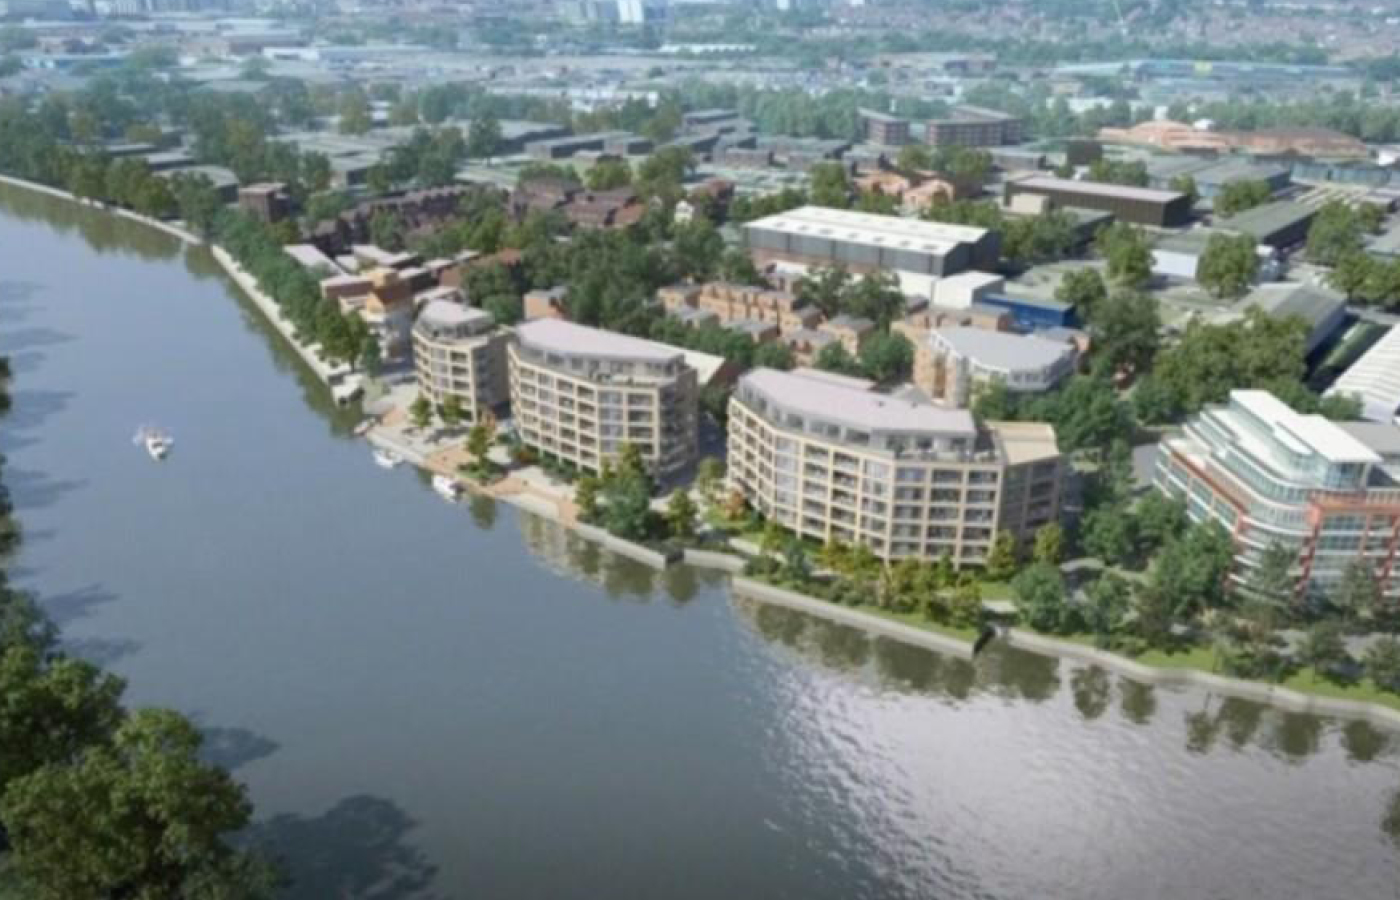 luxury apartment nottingham the yacht club aerial view